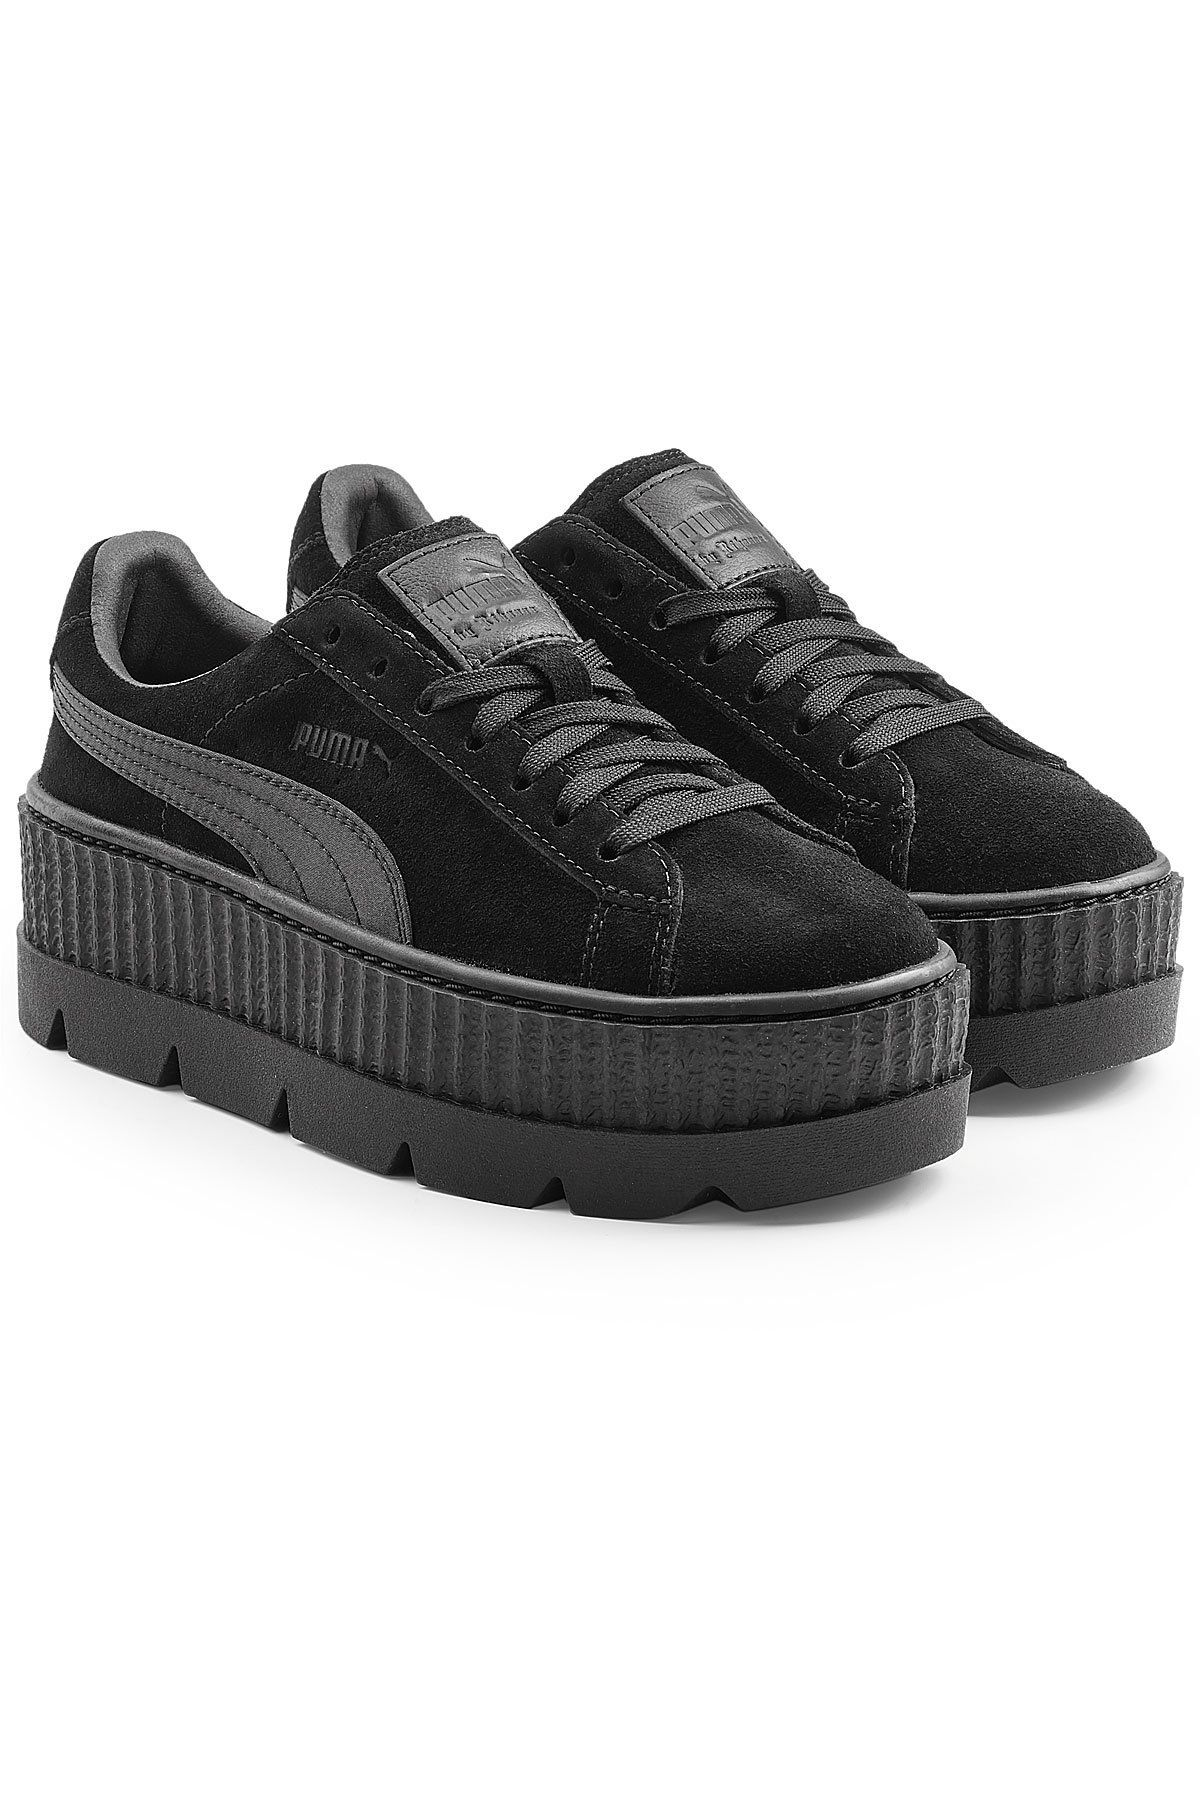 FENTY PUMA by Rihanna The Cleated Creeper Sneakers with Suede b44e728ed14